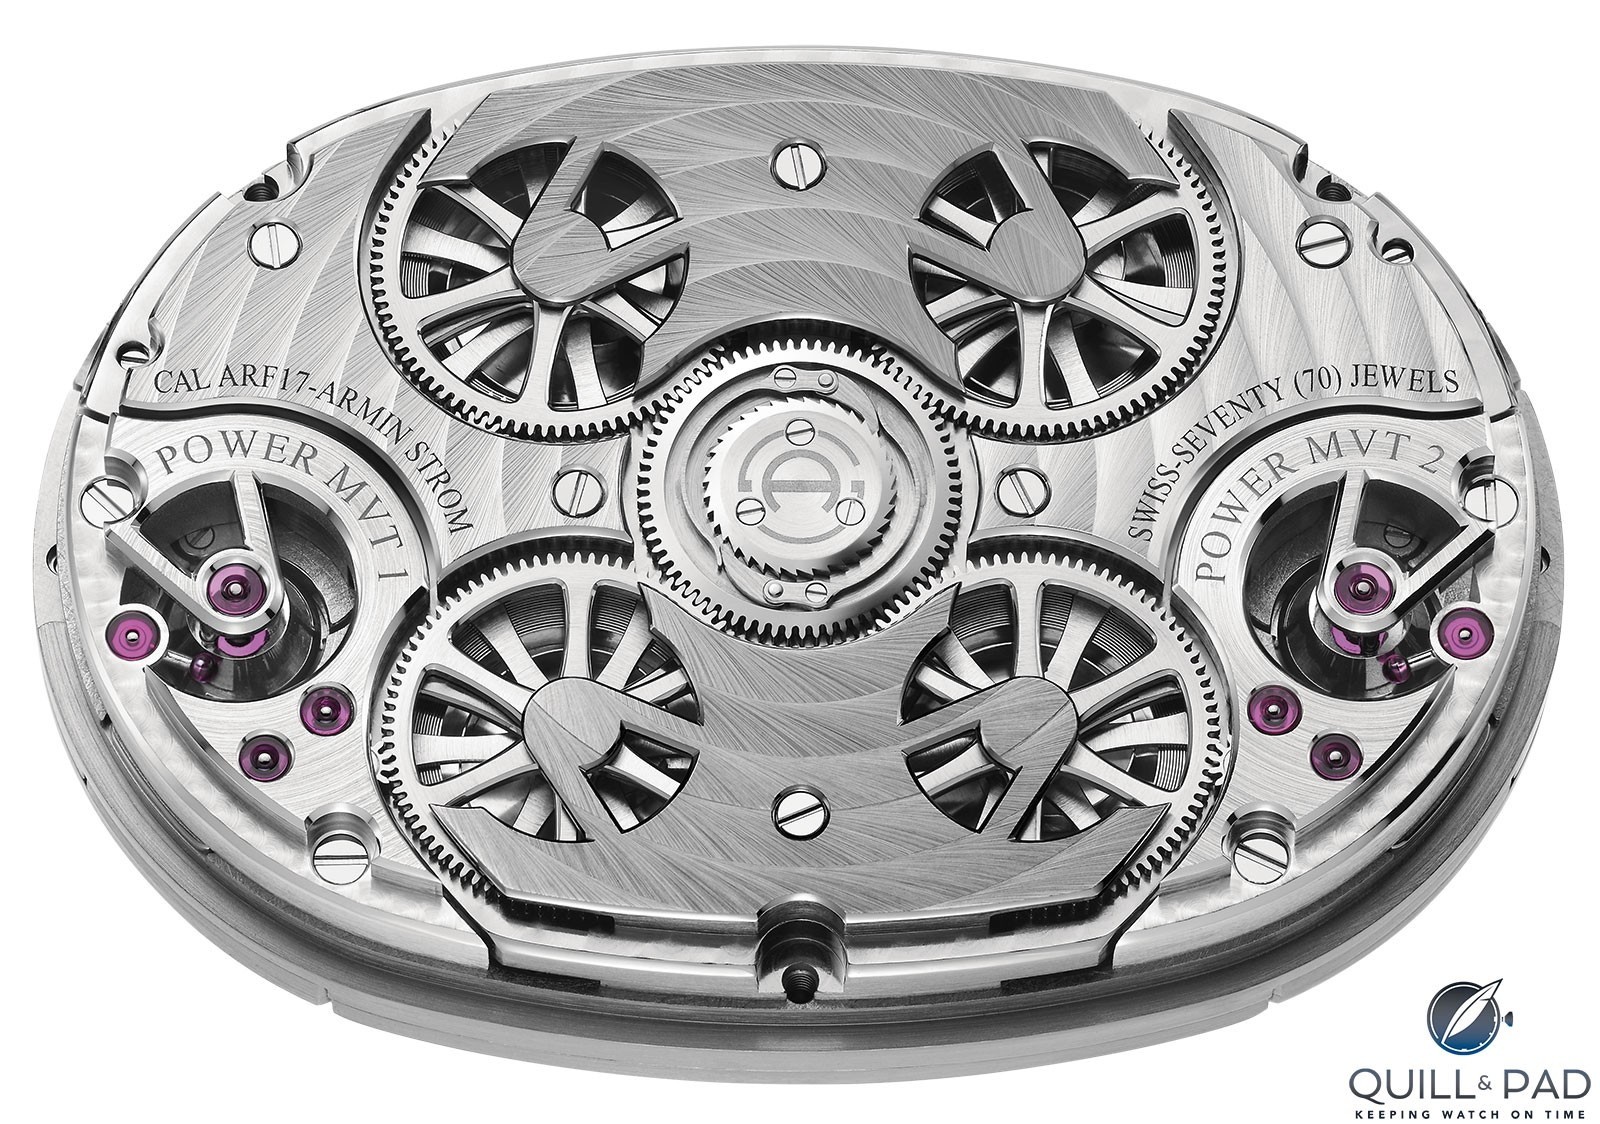 Armin Strom Dual Time Resonance Caliber ARF17 movment side with the four mainspring barrels - two for each movement - are on full display through skeletonized covers